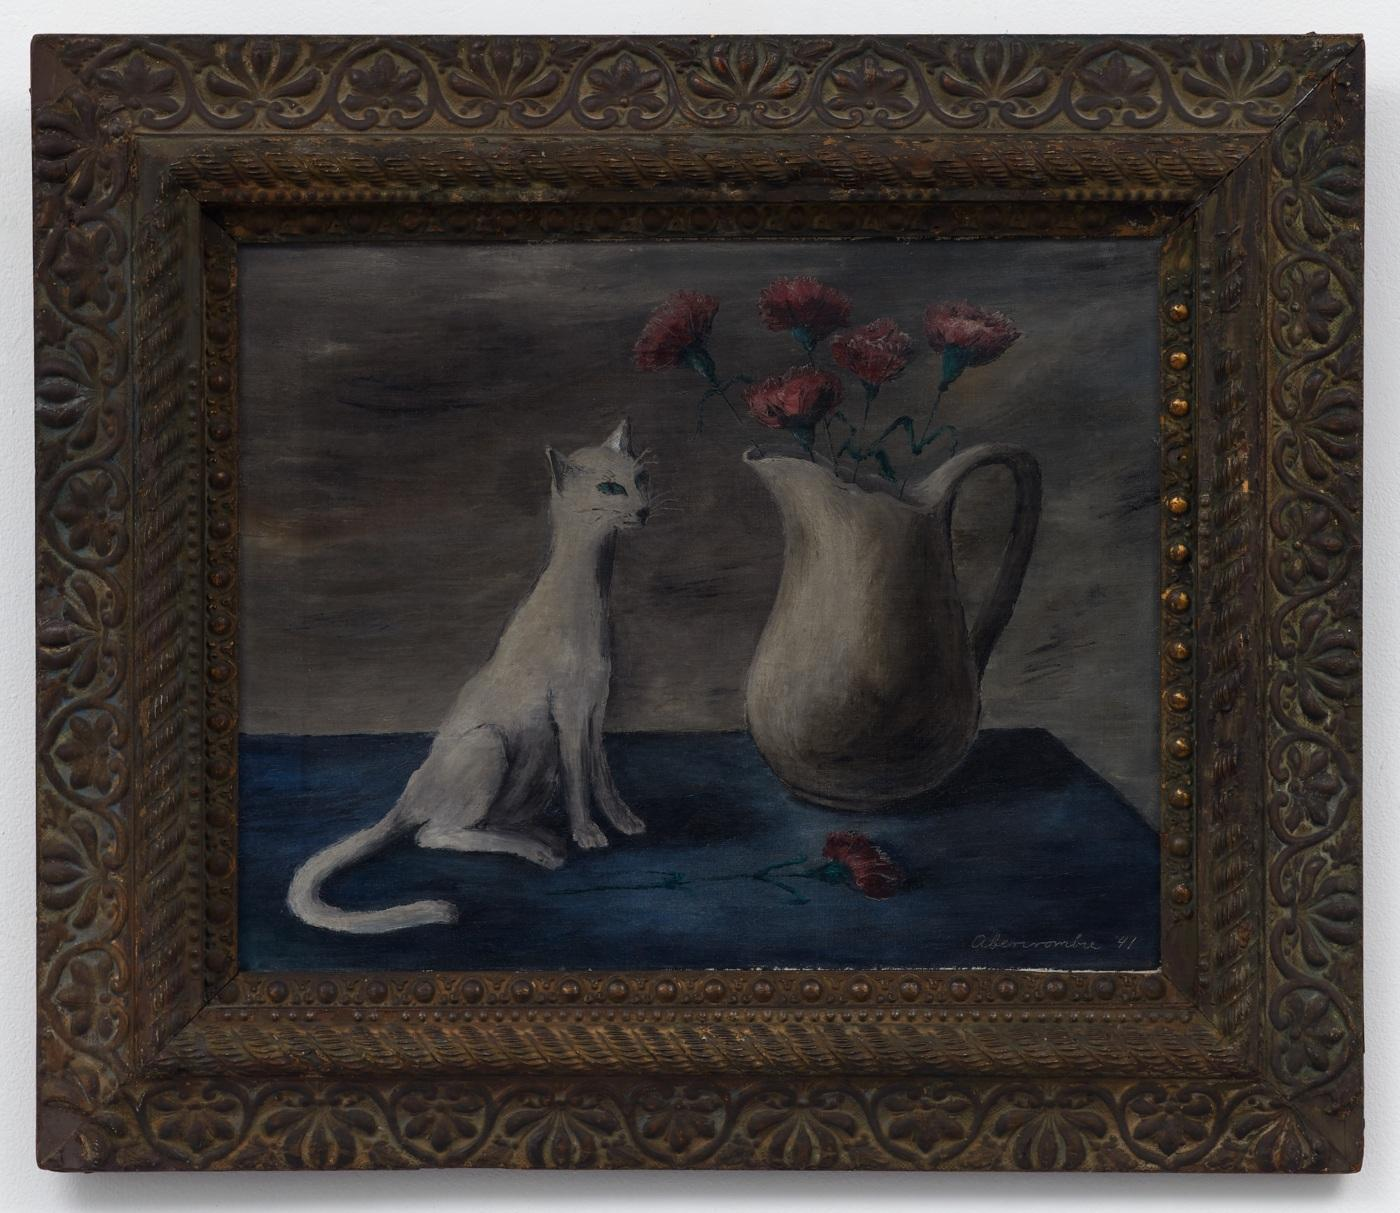 Gertrude Abercrombie,/White Cat and Red Carnations/, 1941, oil on canvas,  40.6 cm × 50.8 cm, 61.6 × 71.75 cm (framed)